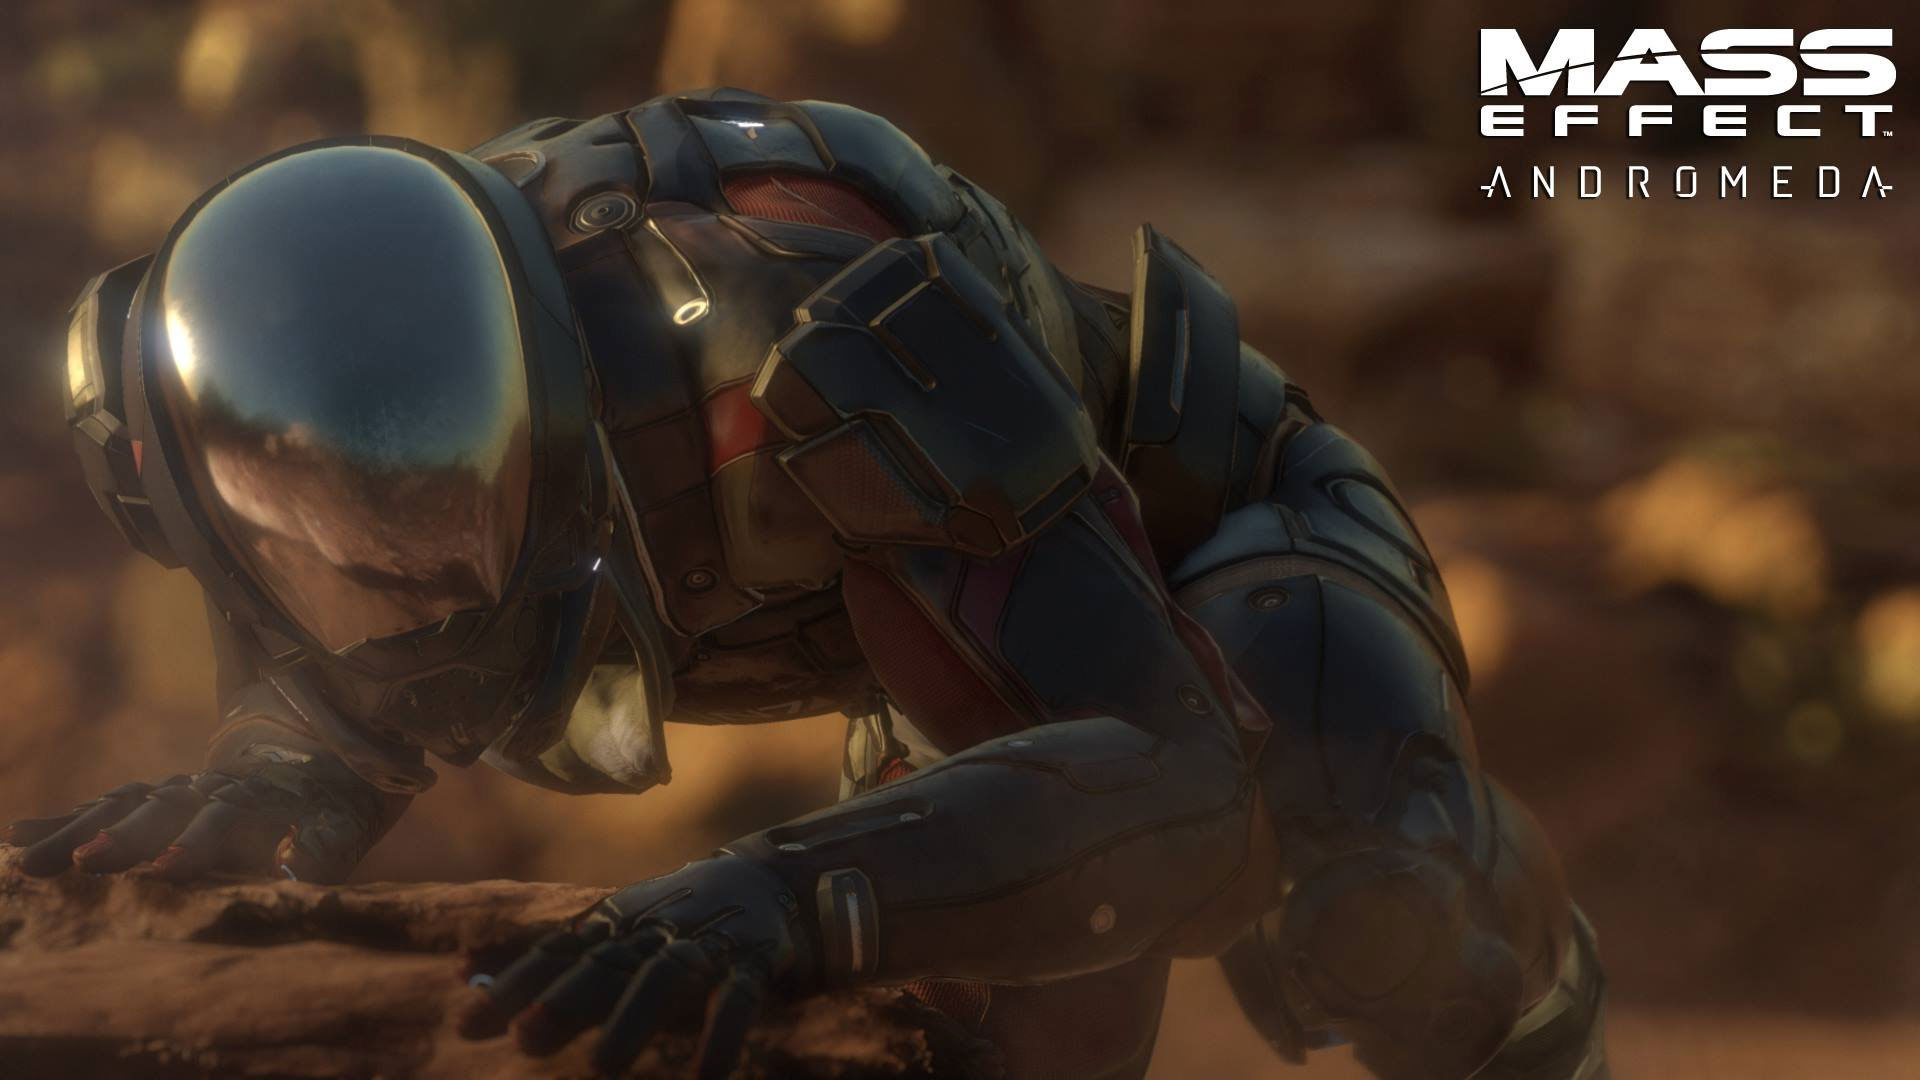 Mass Effect Andromeda Wallpapers In Ultra Hd 4k Gameranx